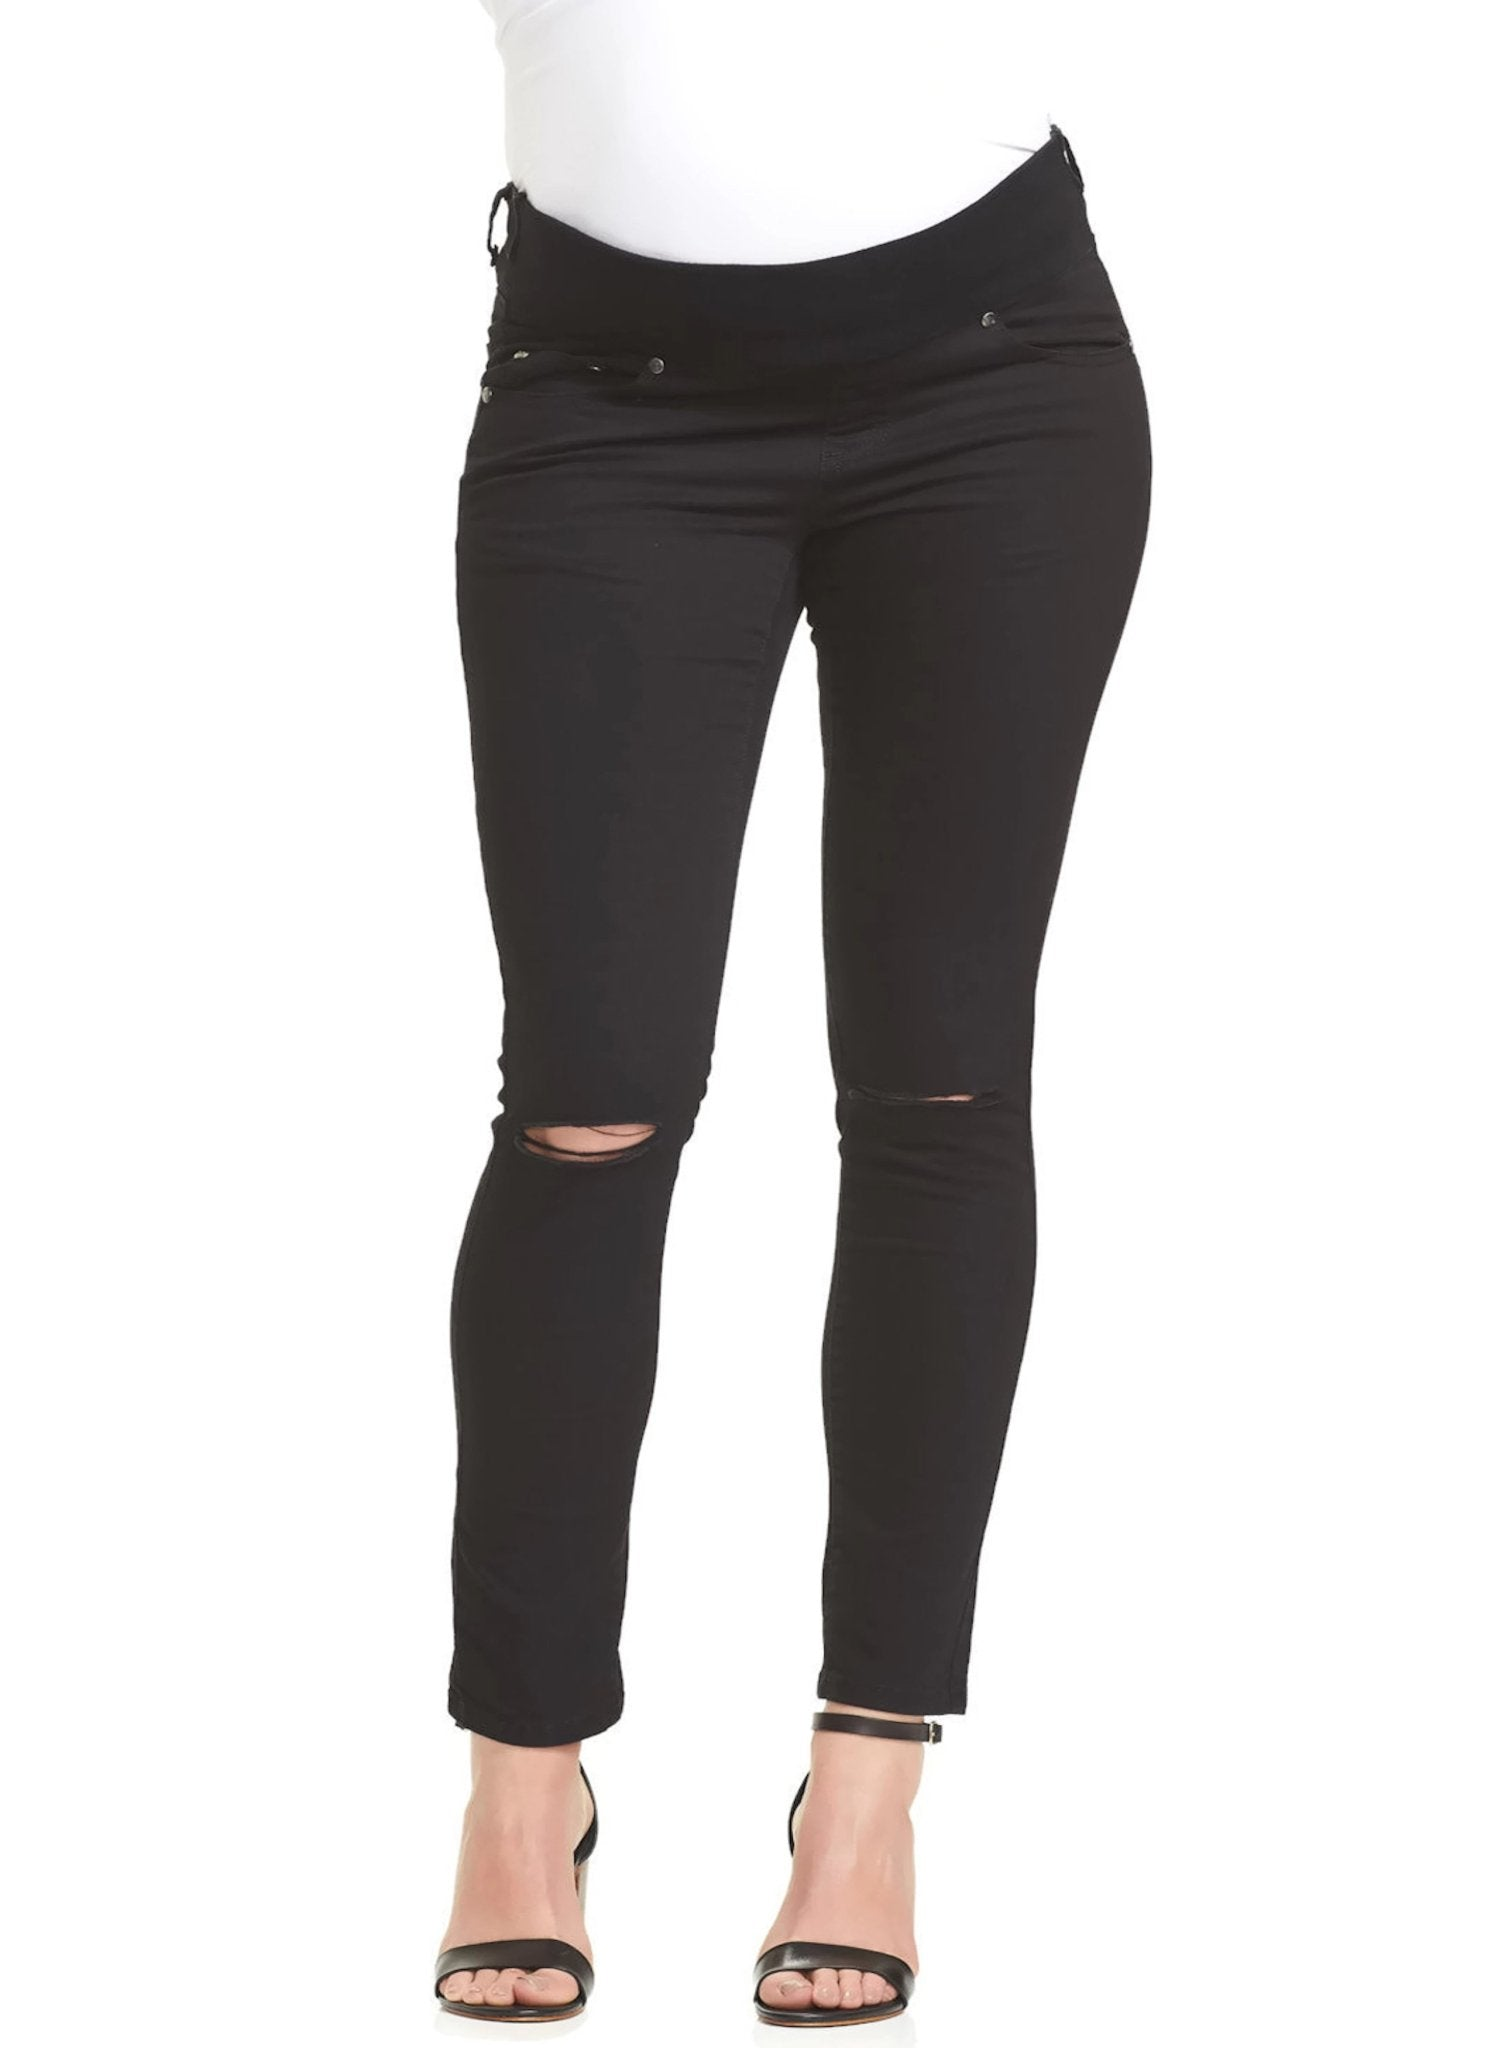 Base Distressed Maternity Denim - Black - Mums and Bumps